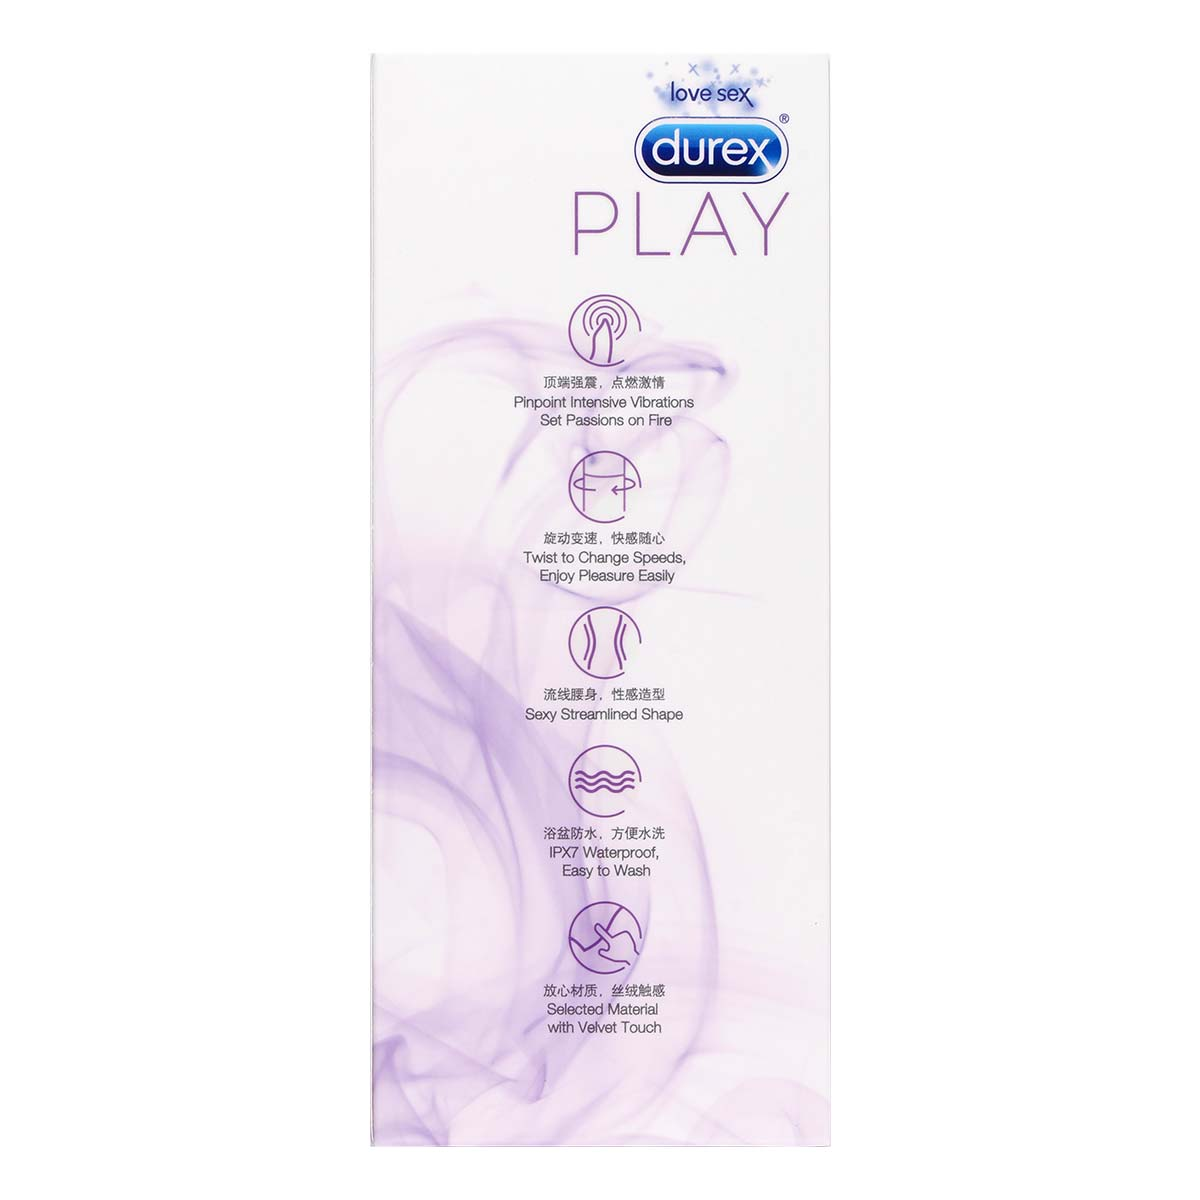 Durex Play V-Vibe multi-speed vibe